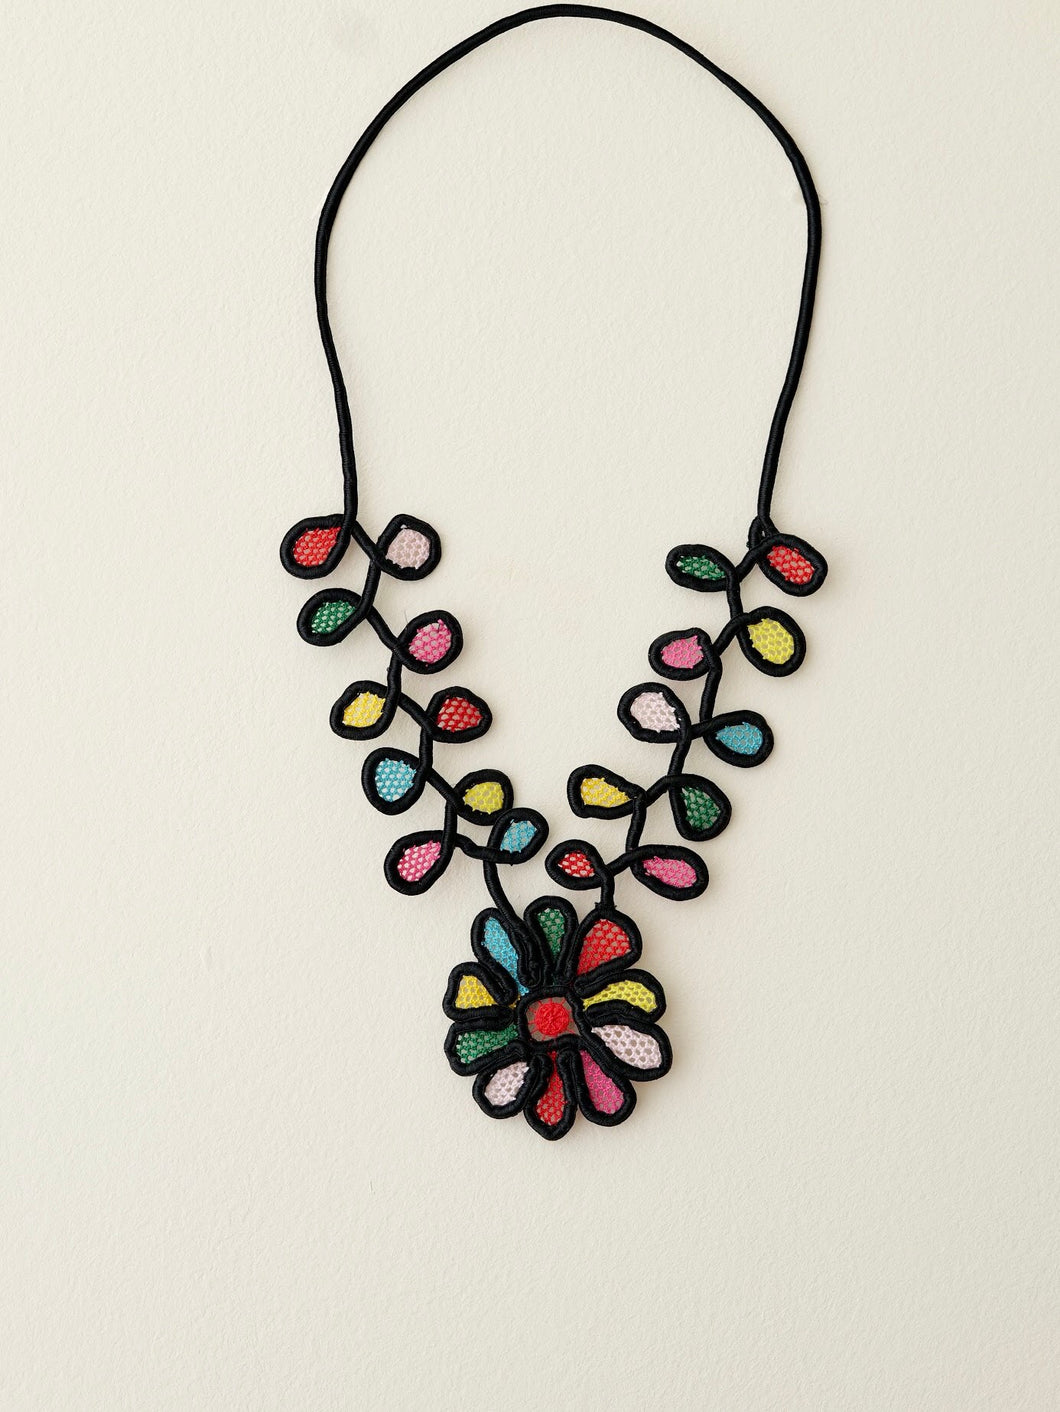 Baroque Garden, Irish lace necklace